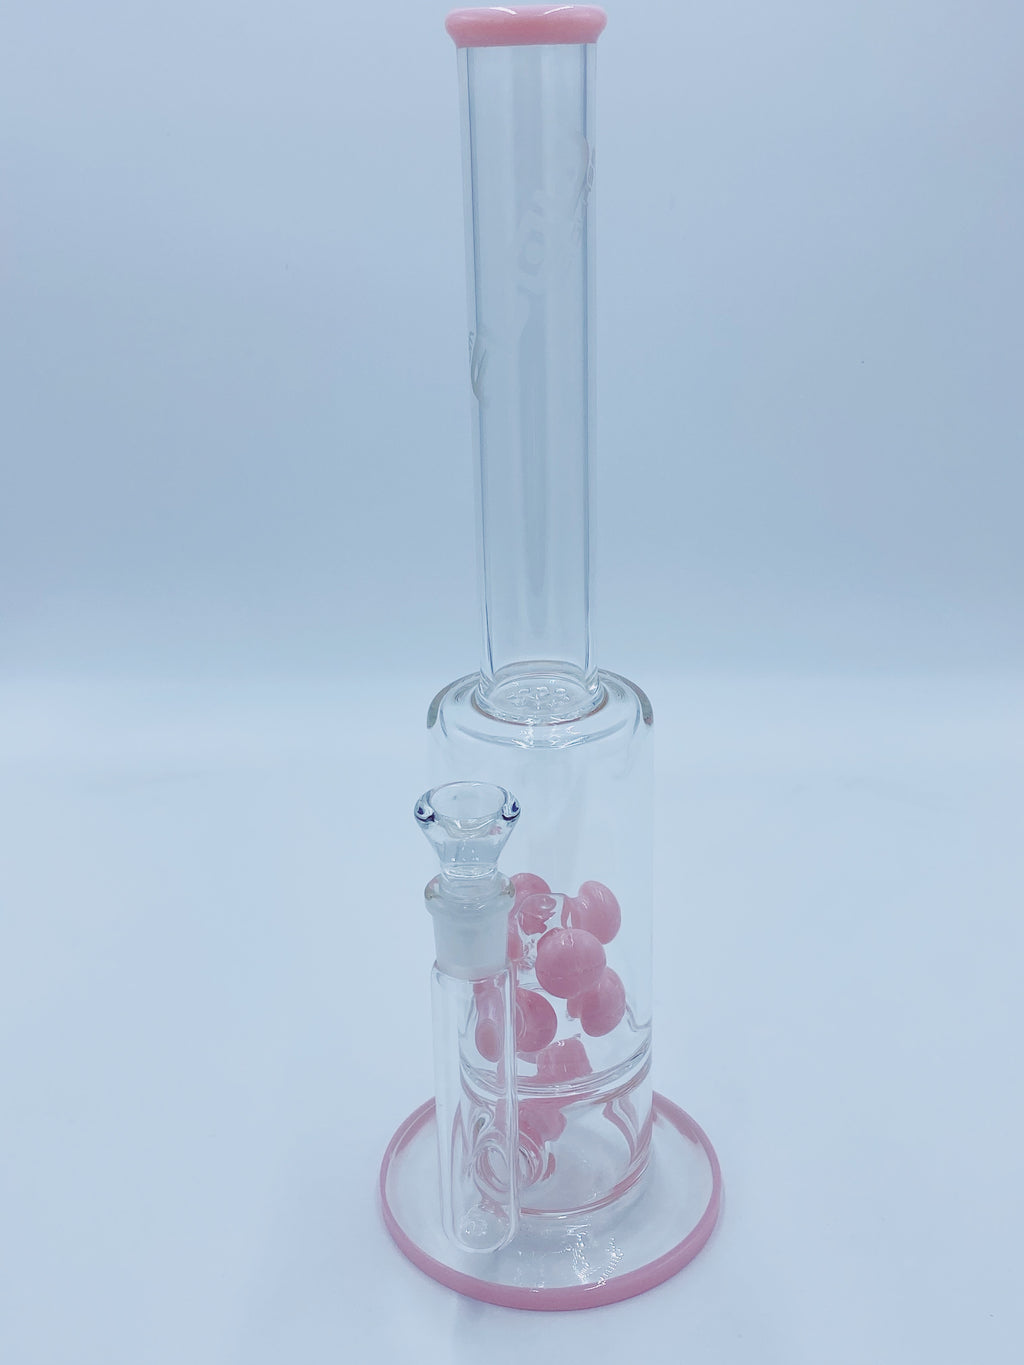 JM FLOW STEMLINE TO CLUSTER PERCOLATOR - Smoke Country - Land of the artistic glass blown bongs